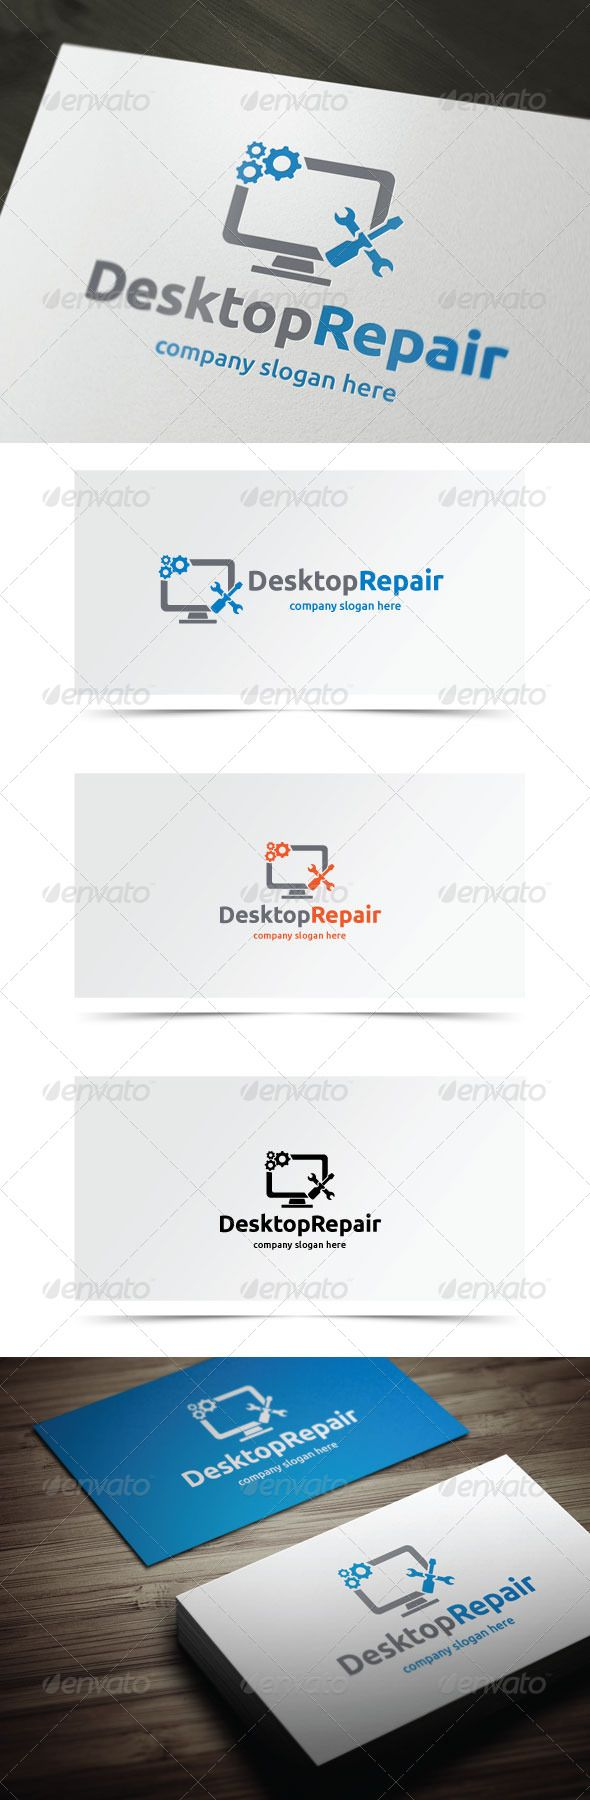 Desktop Repair Logo templates, Vector logo, Logo design